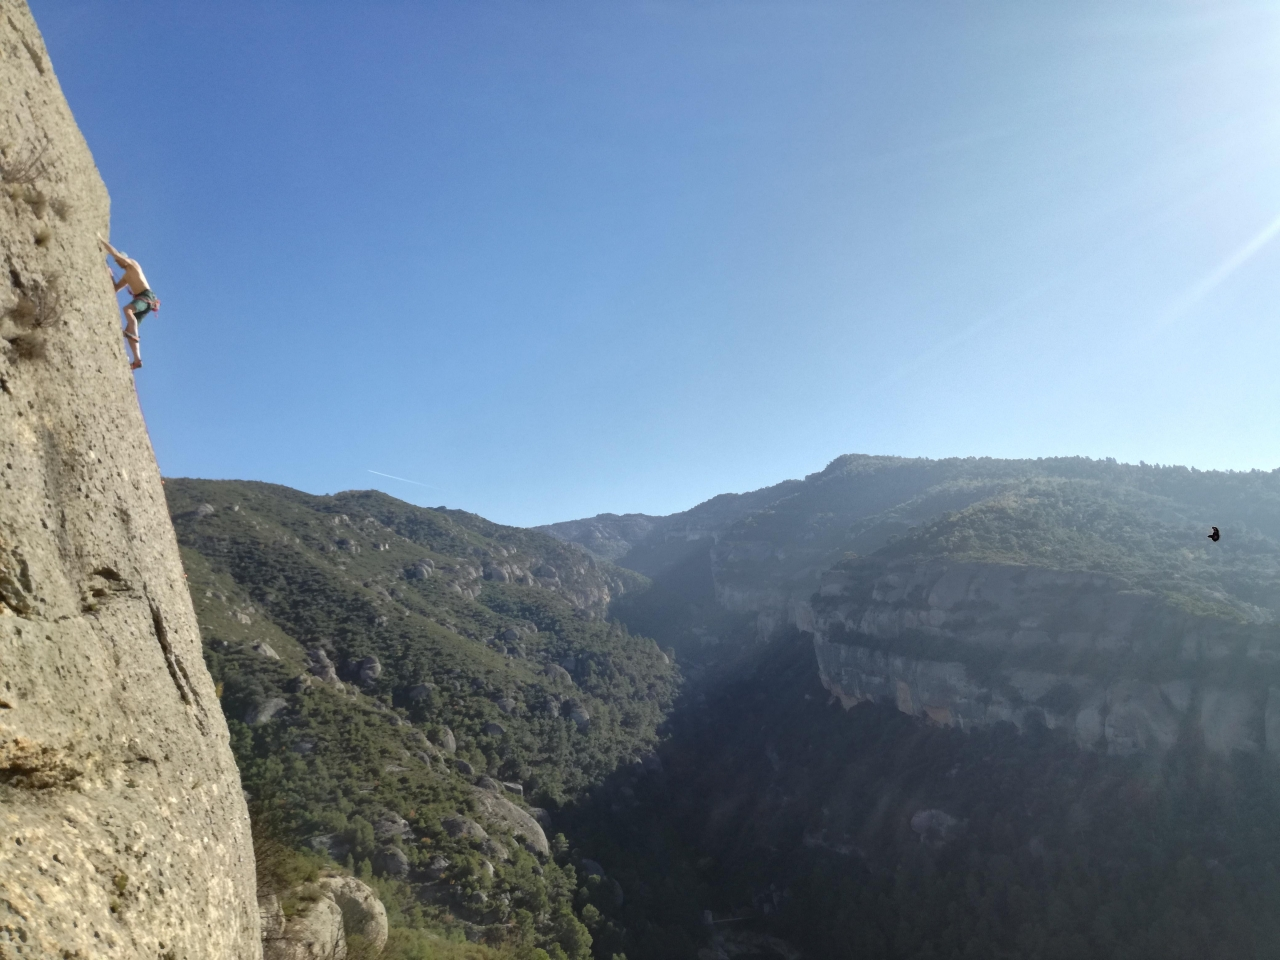 A picture from Margalef by Robin Albert